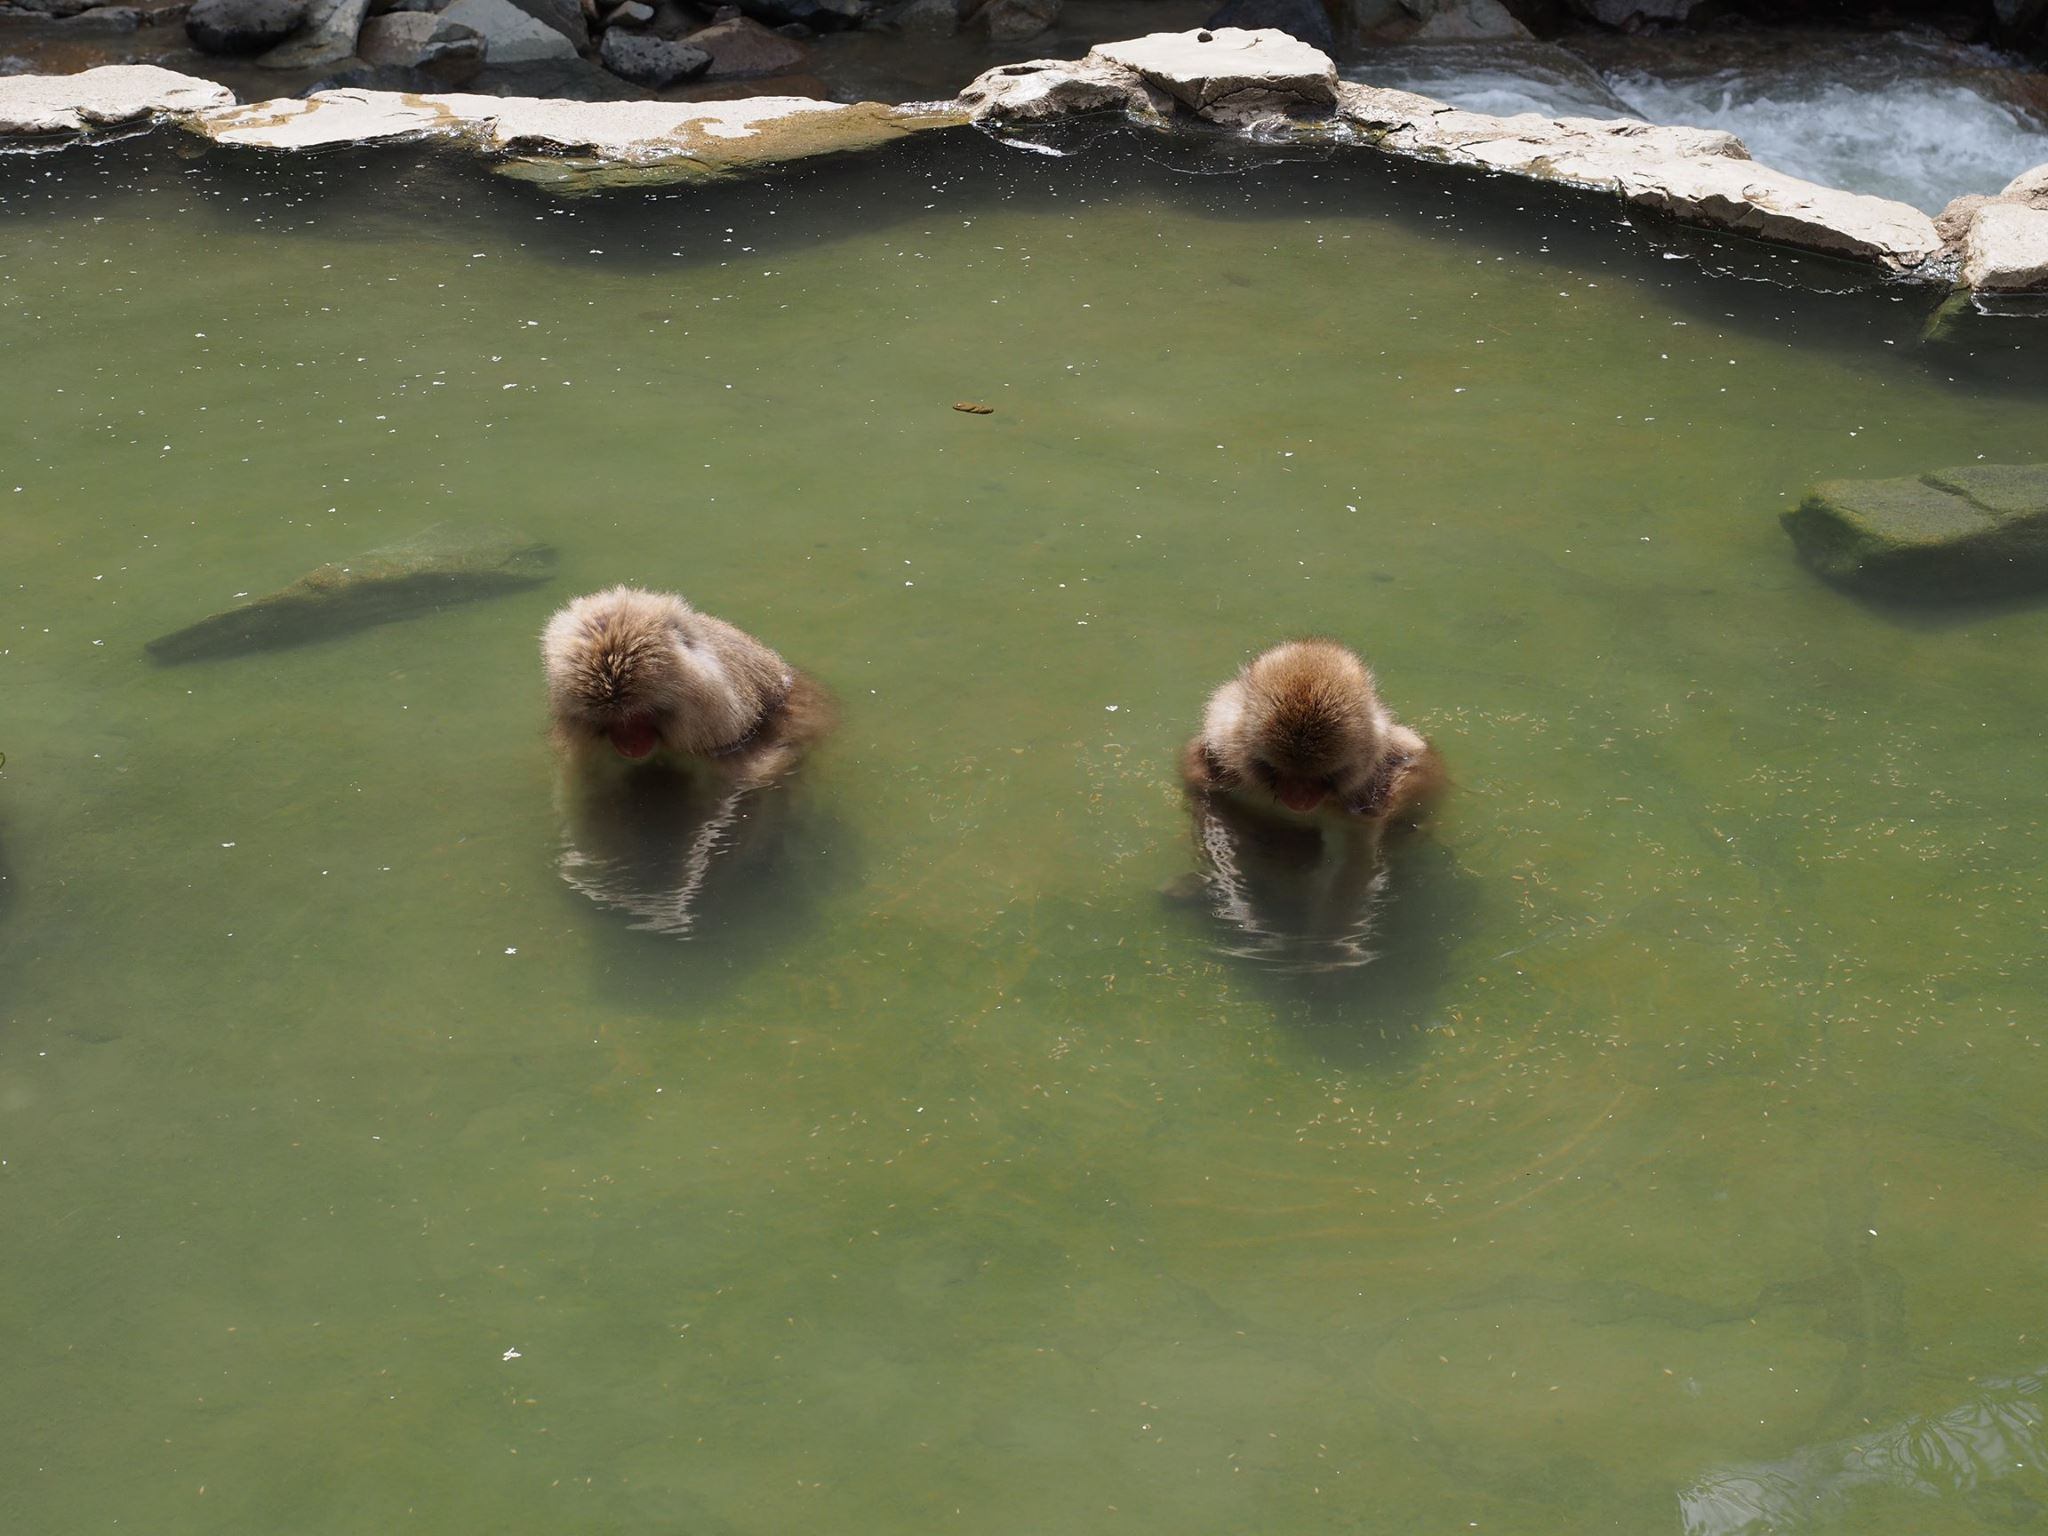 macaque snow monkeys in water onsen